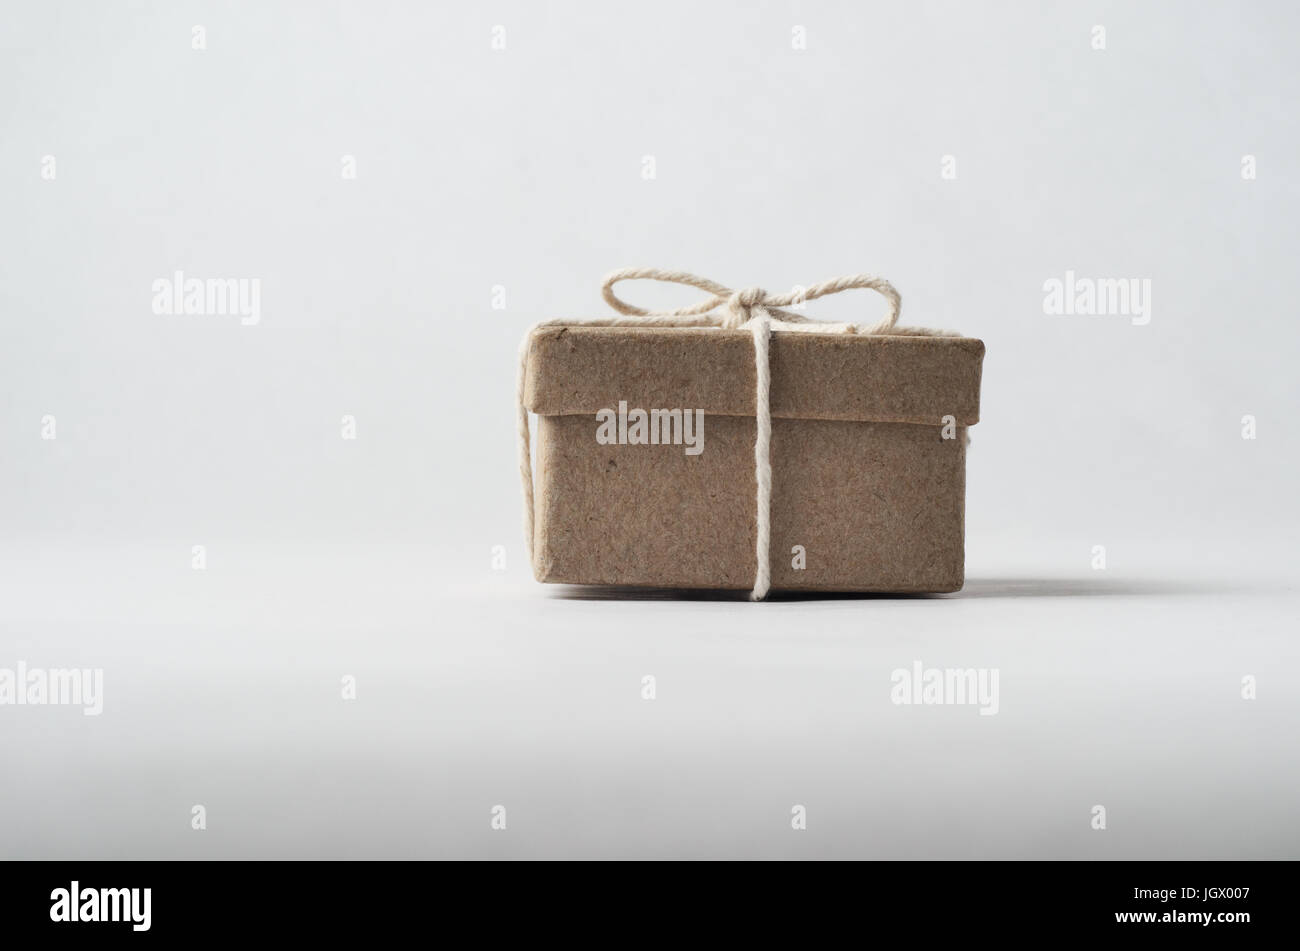 Eye level shot of a simply packaged brown cardboard box with lid, tied to a bow with string.  Off white background. - Stock Image